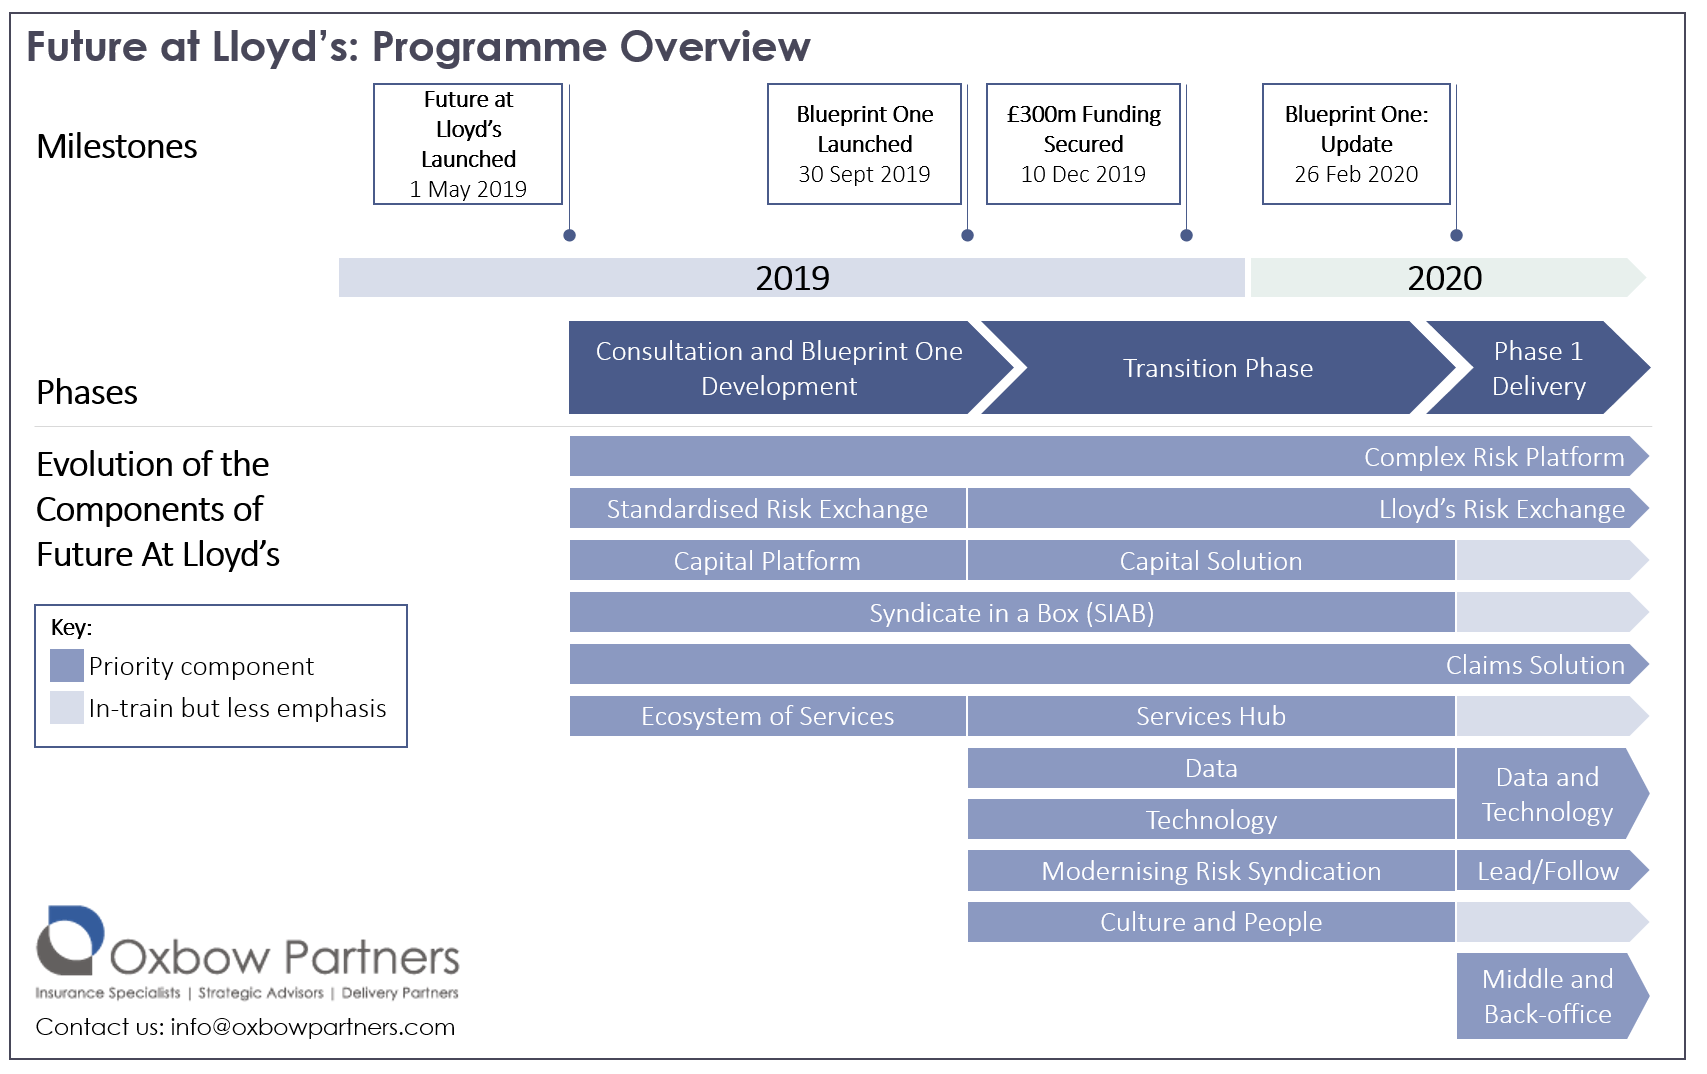 Future at Lloyd's Programme Overview Blueprint One Update Infographic